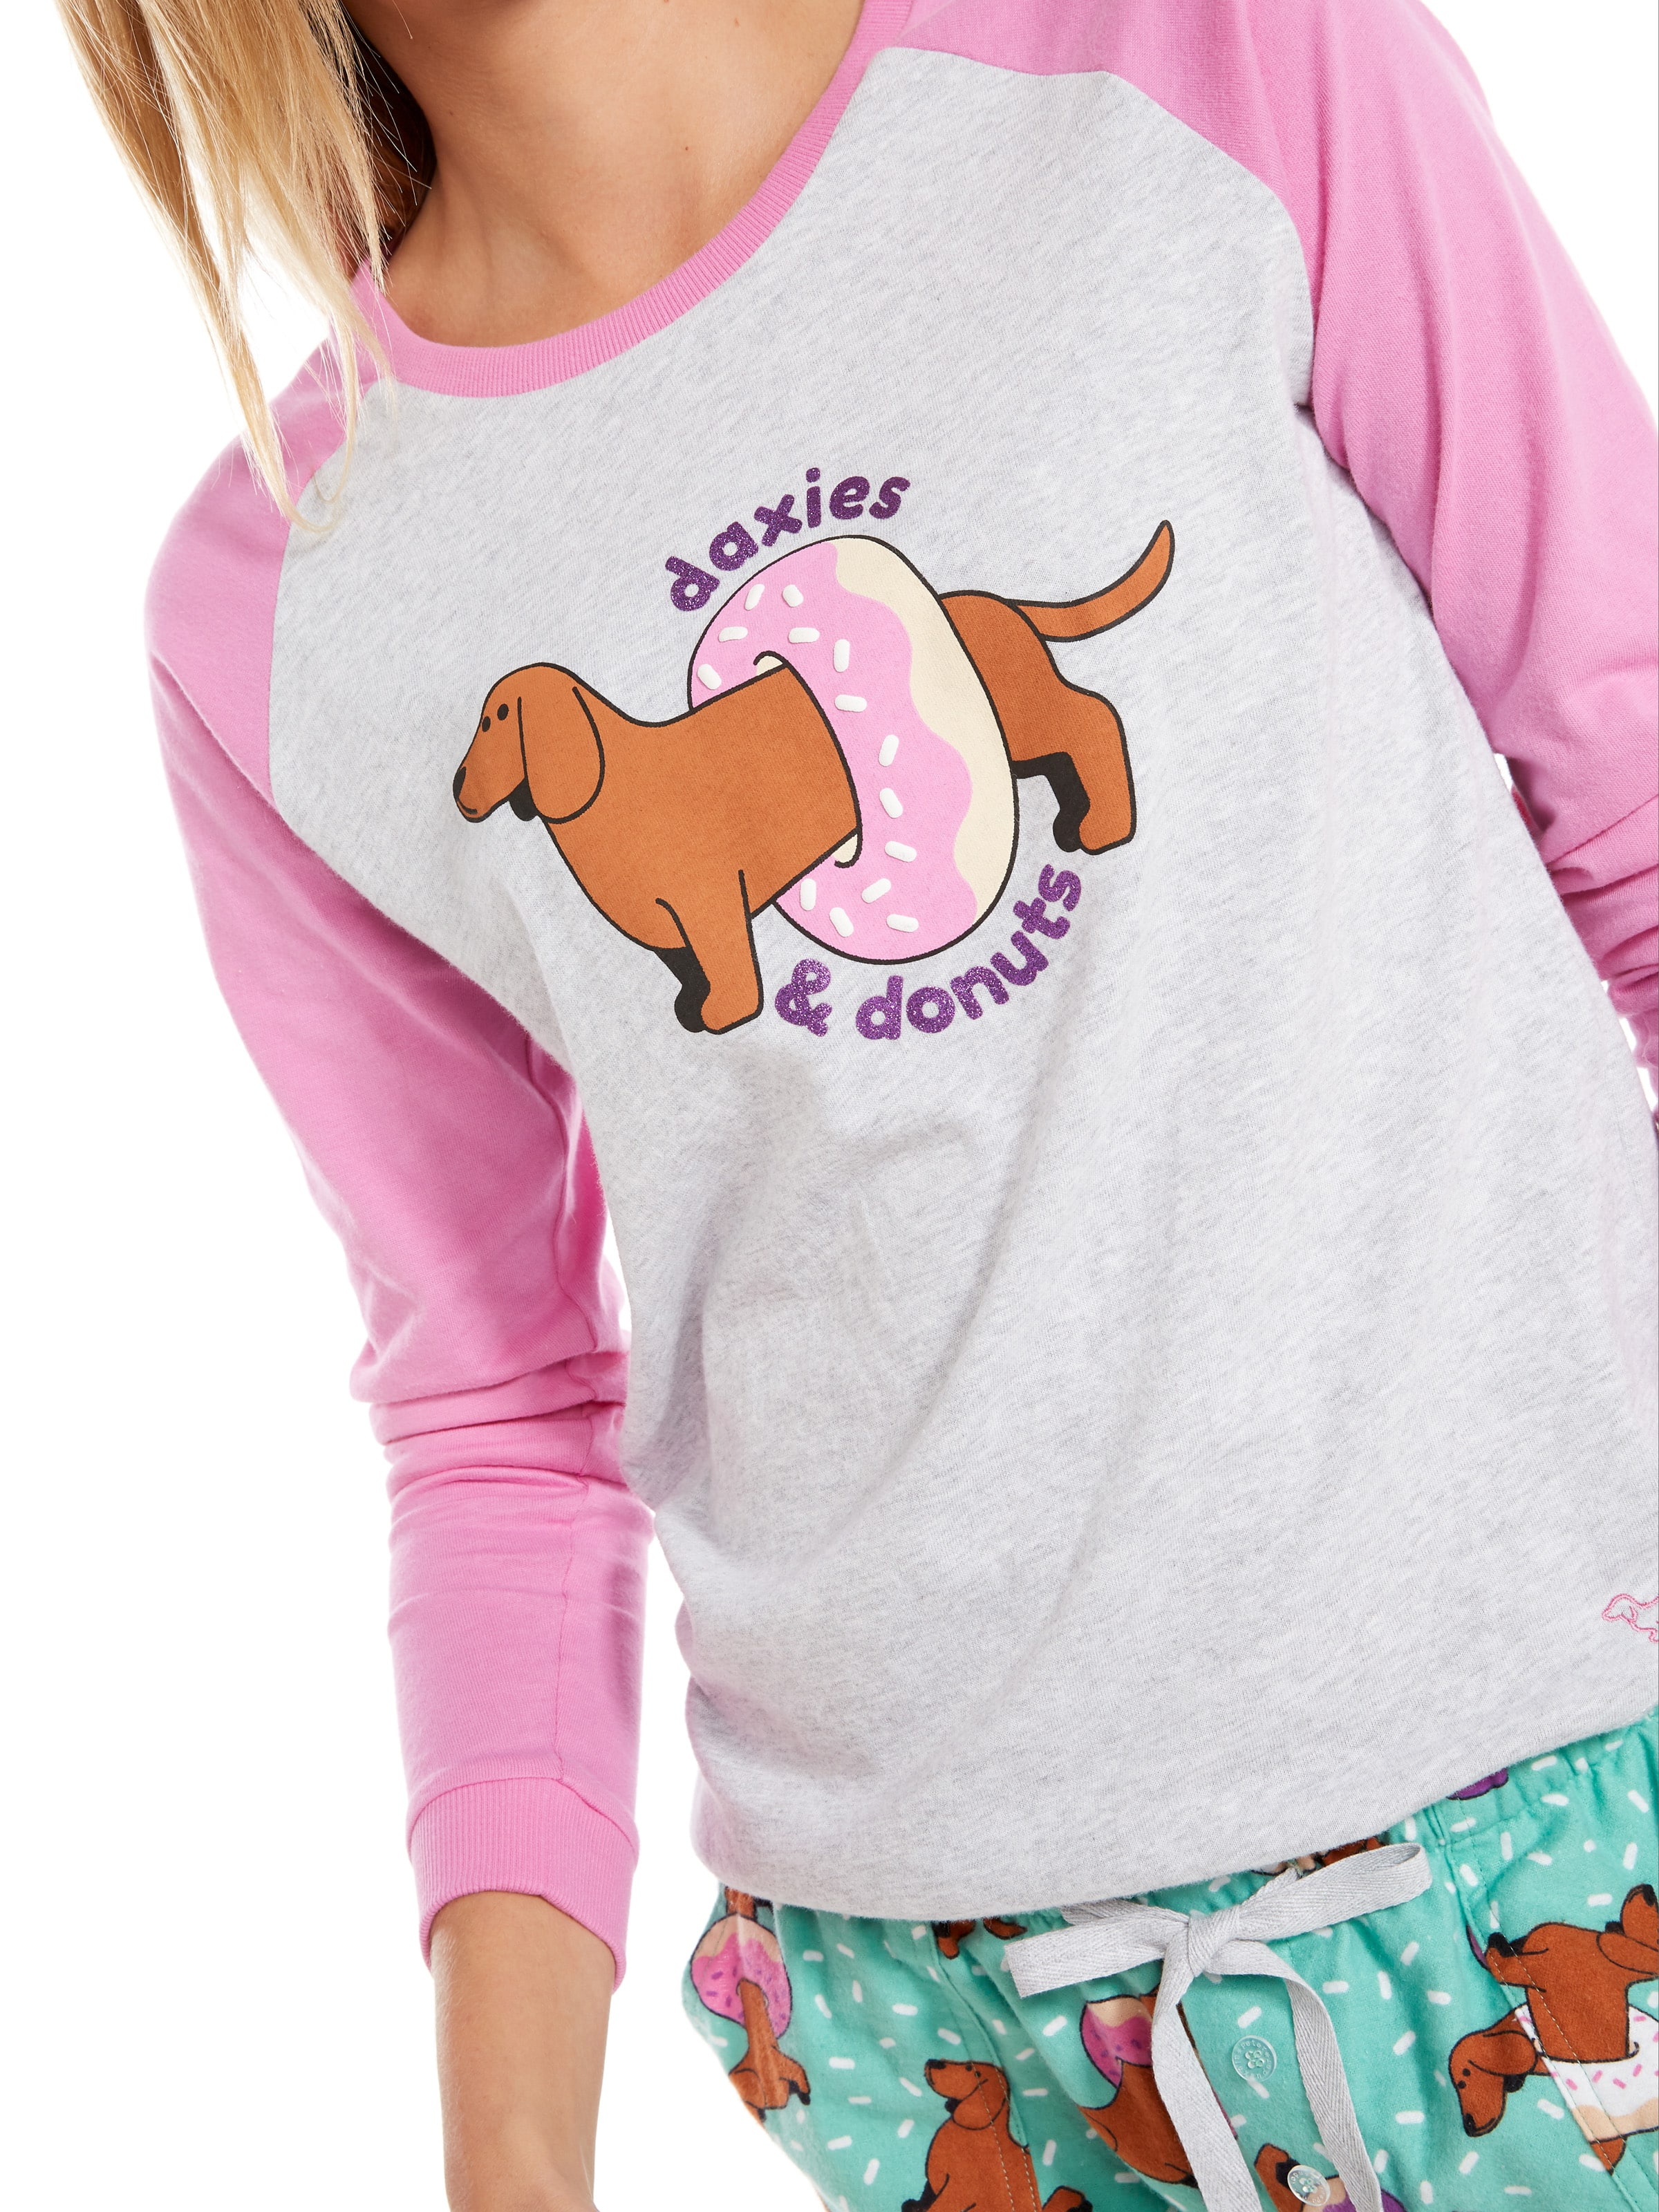 Daxies & Donuts Long Sleeve Top